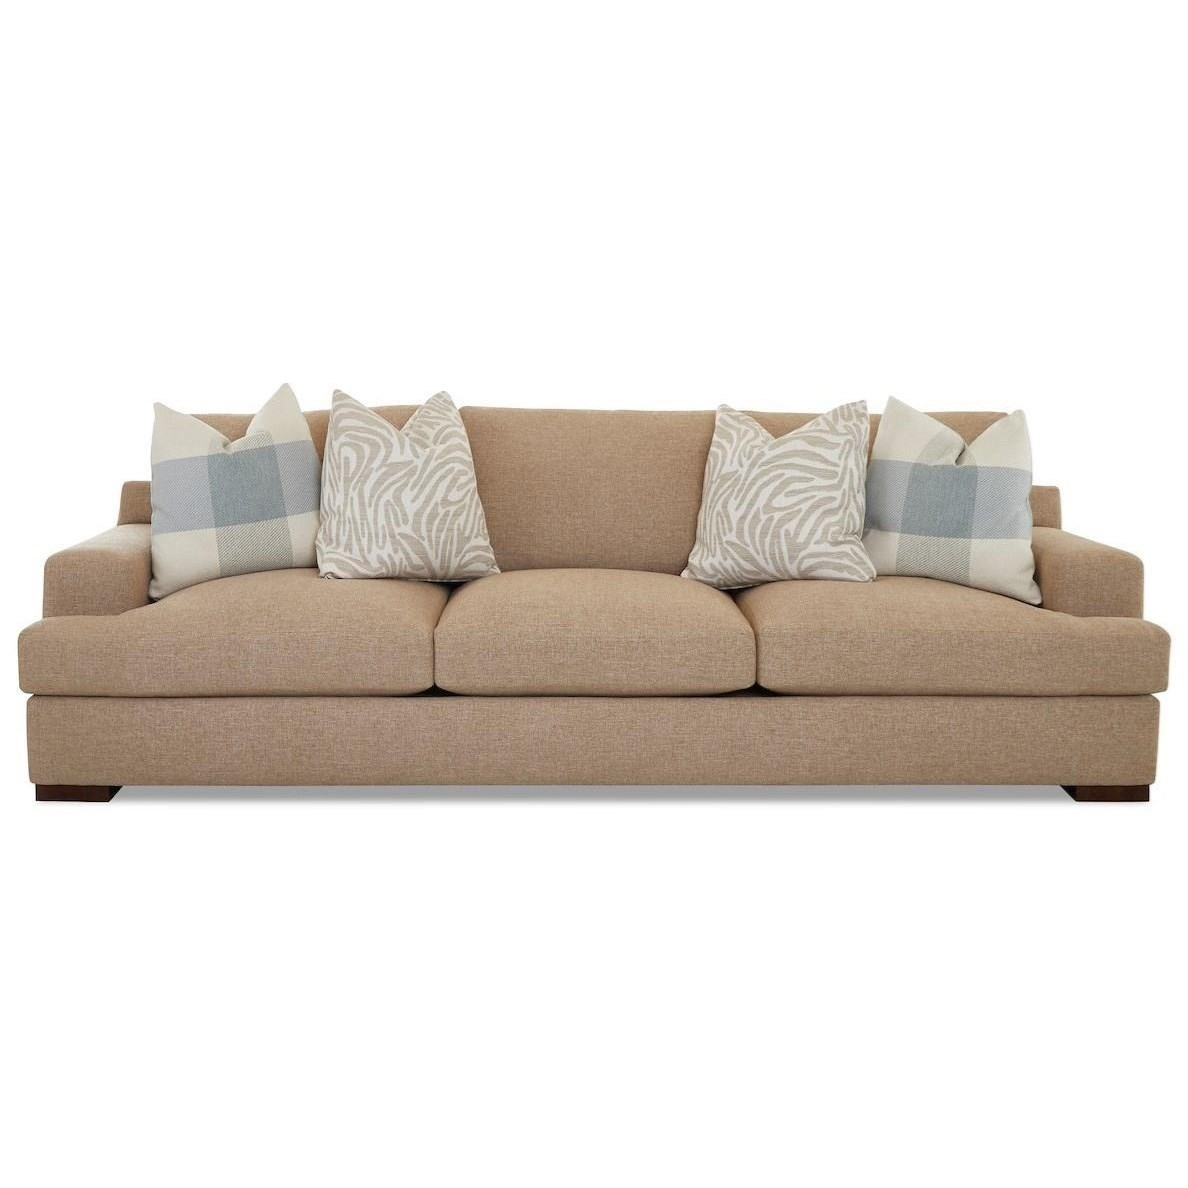 Lyon Extra Large Sofa by Klaussner at Northeast Factory Direct